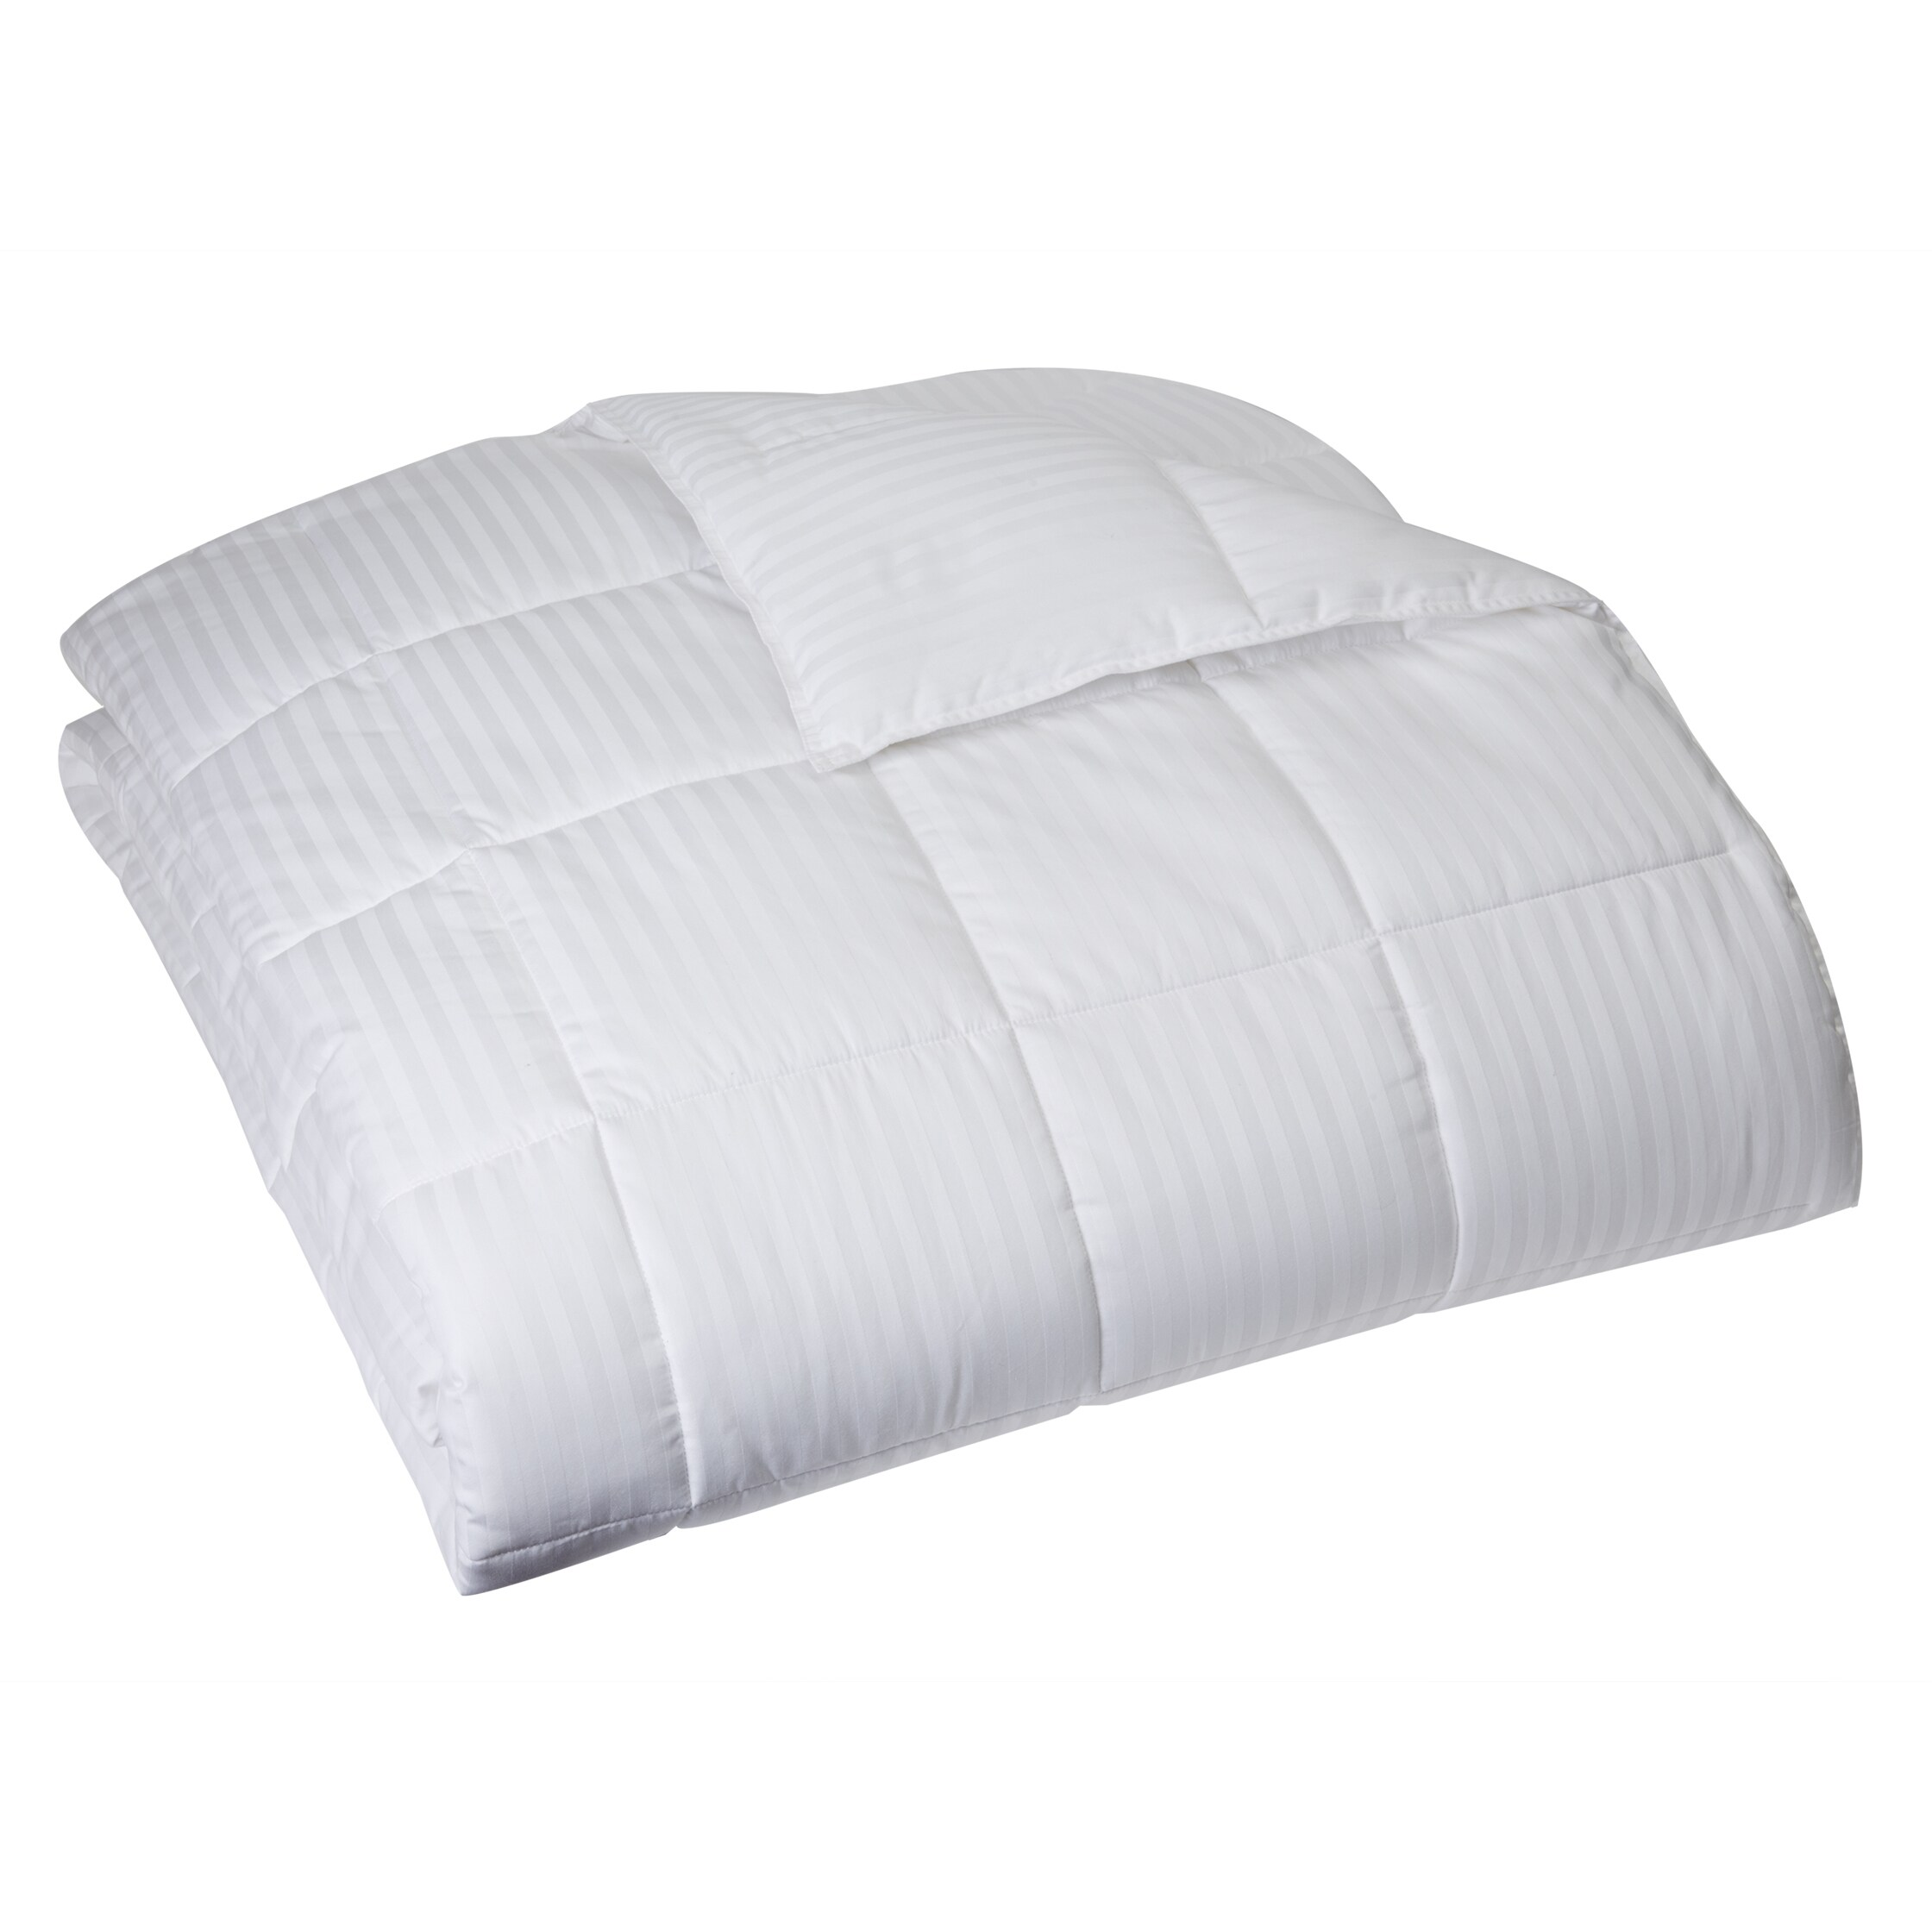 comforter product all down bath season shipping number cotton sleep supreme alternative today overstock free bedding